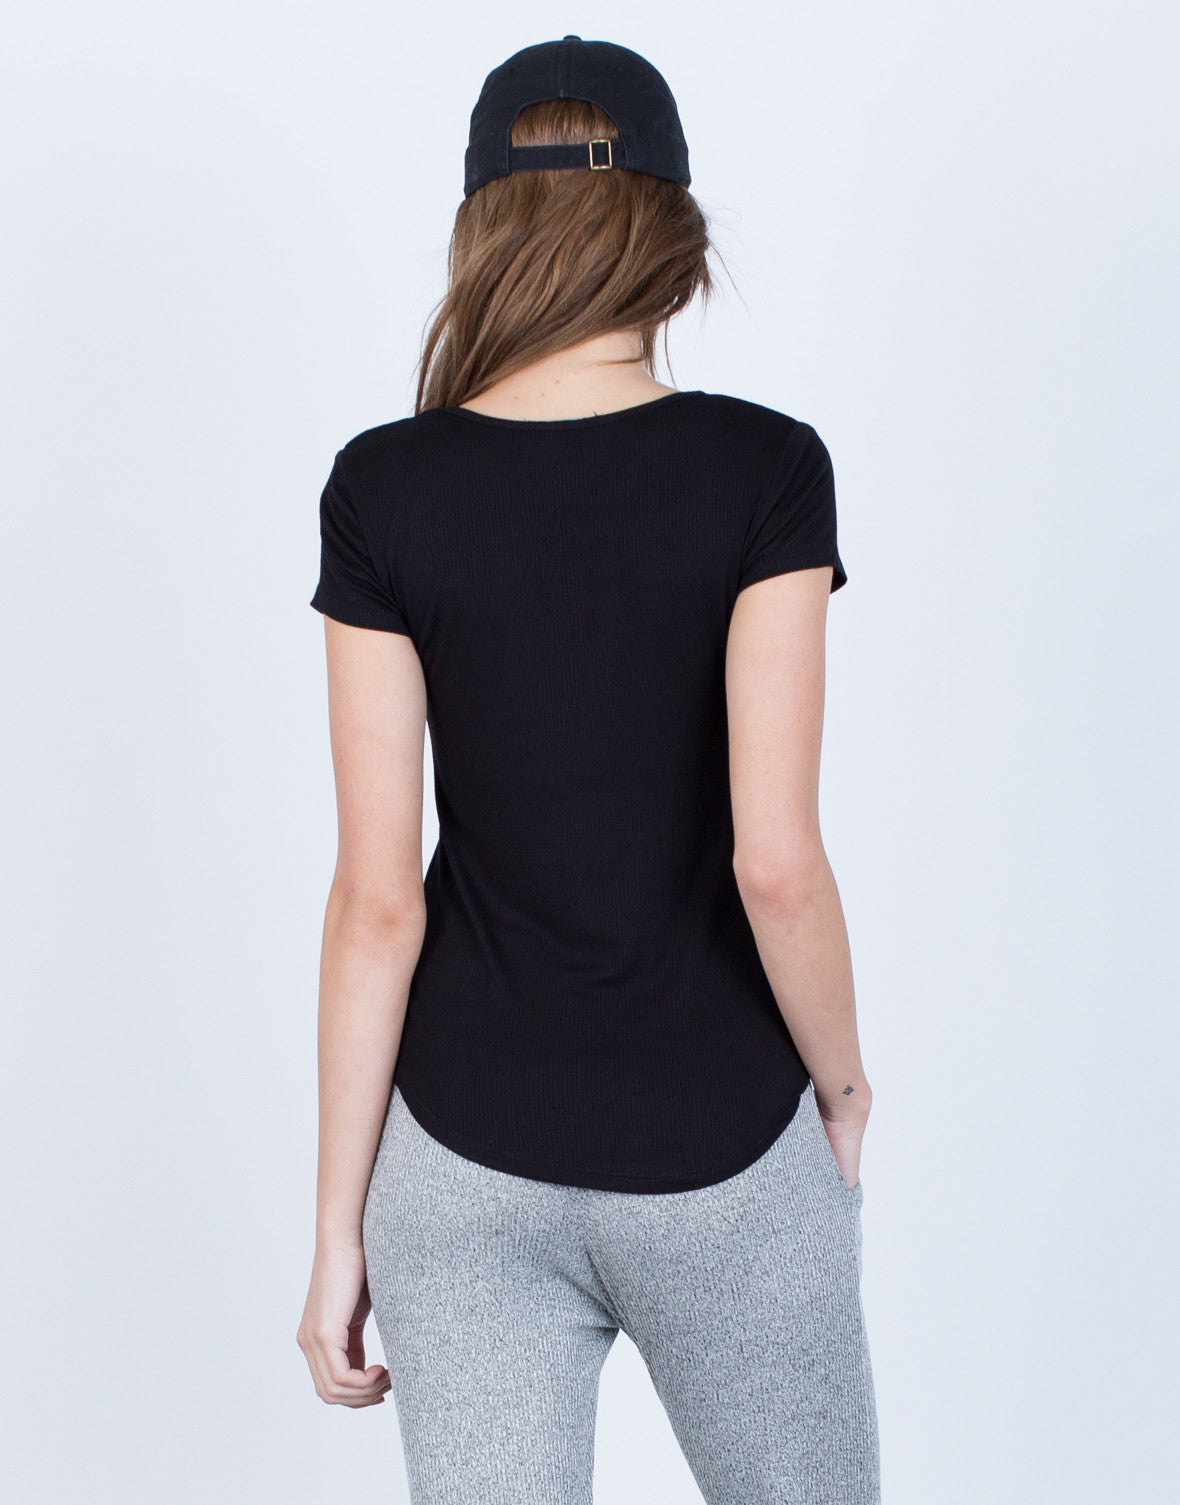 Back View of Scoop Neck Knit Tee